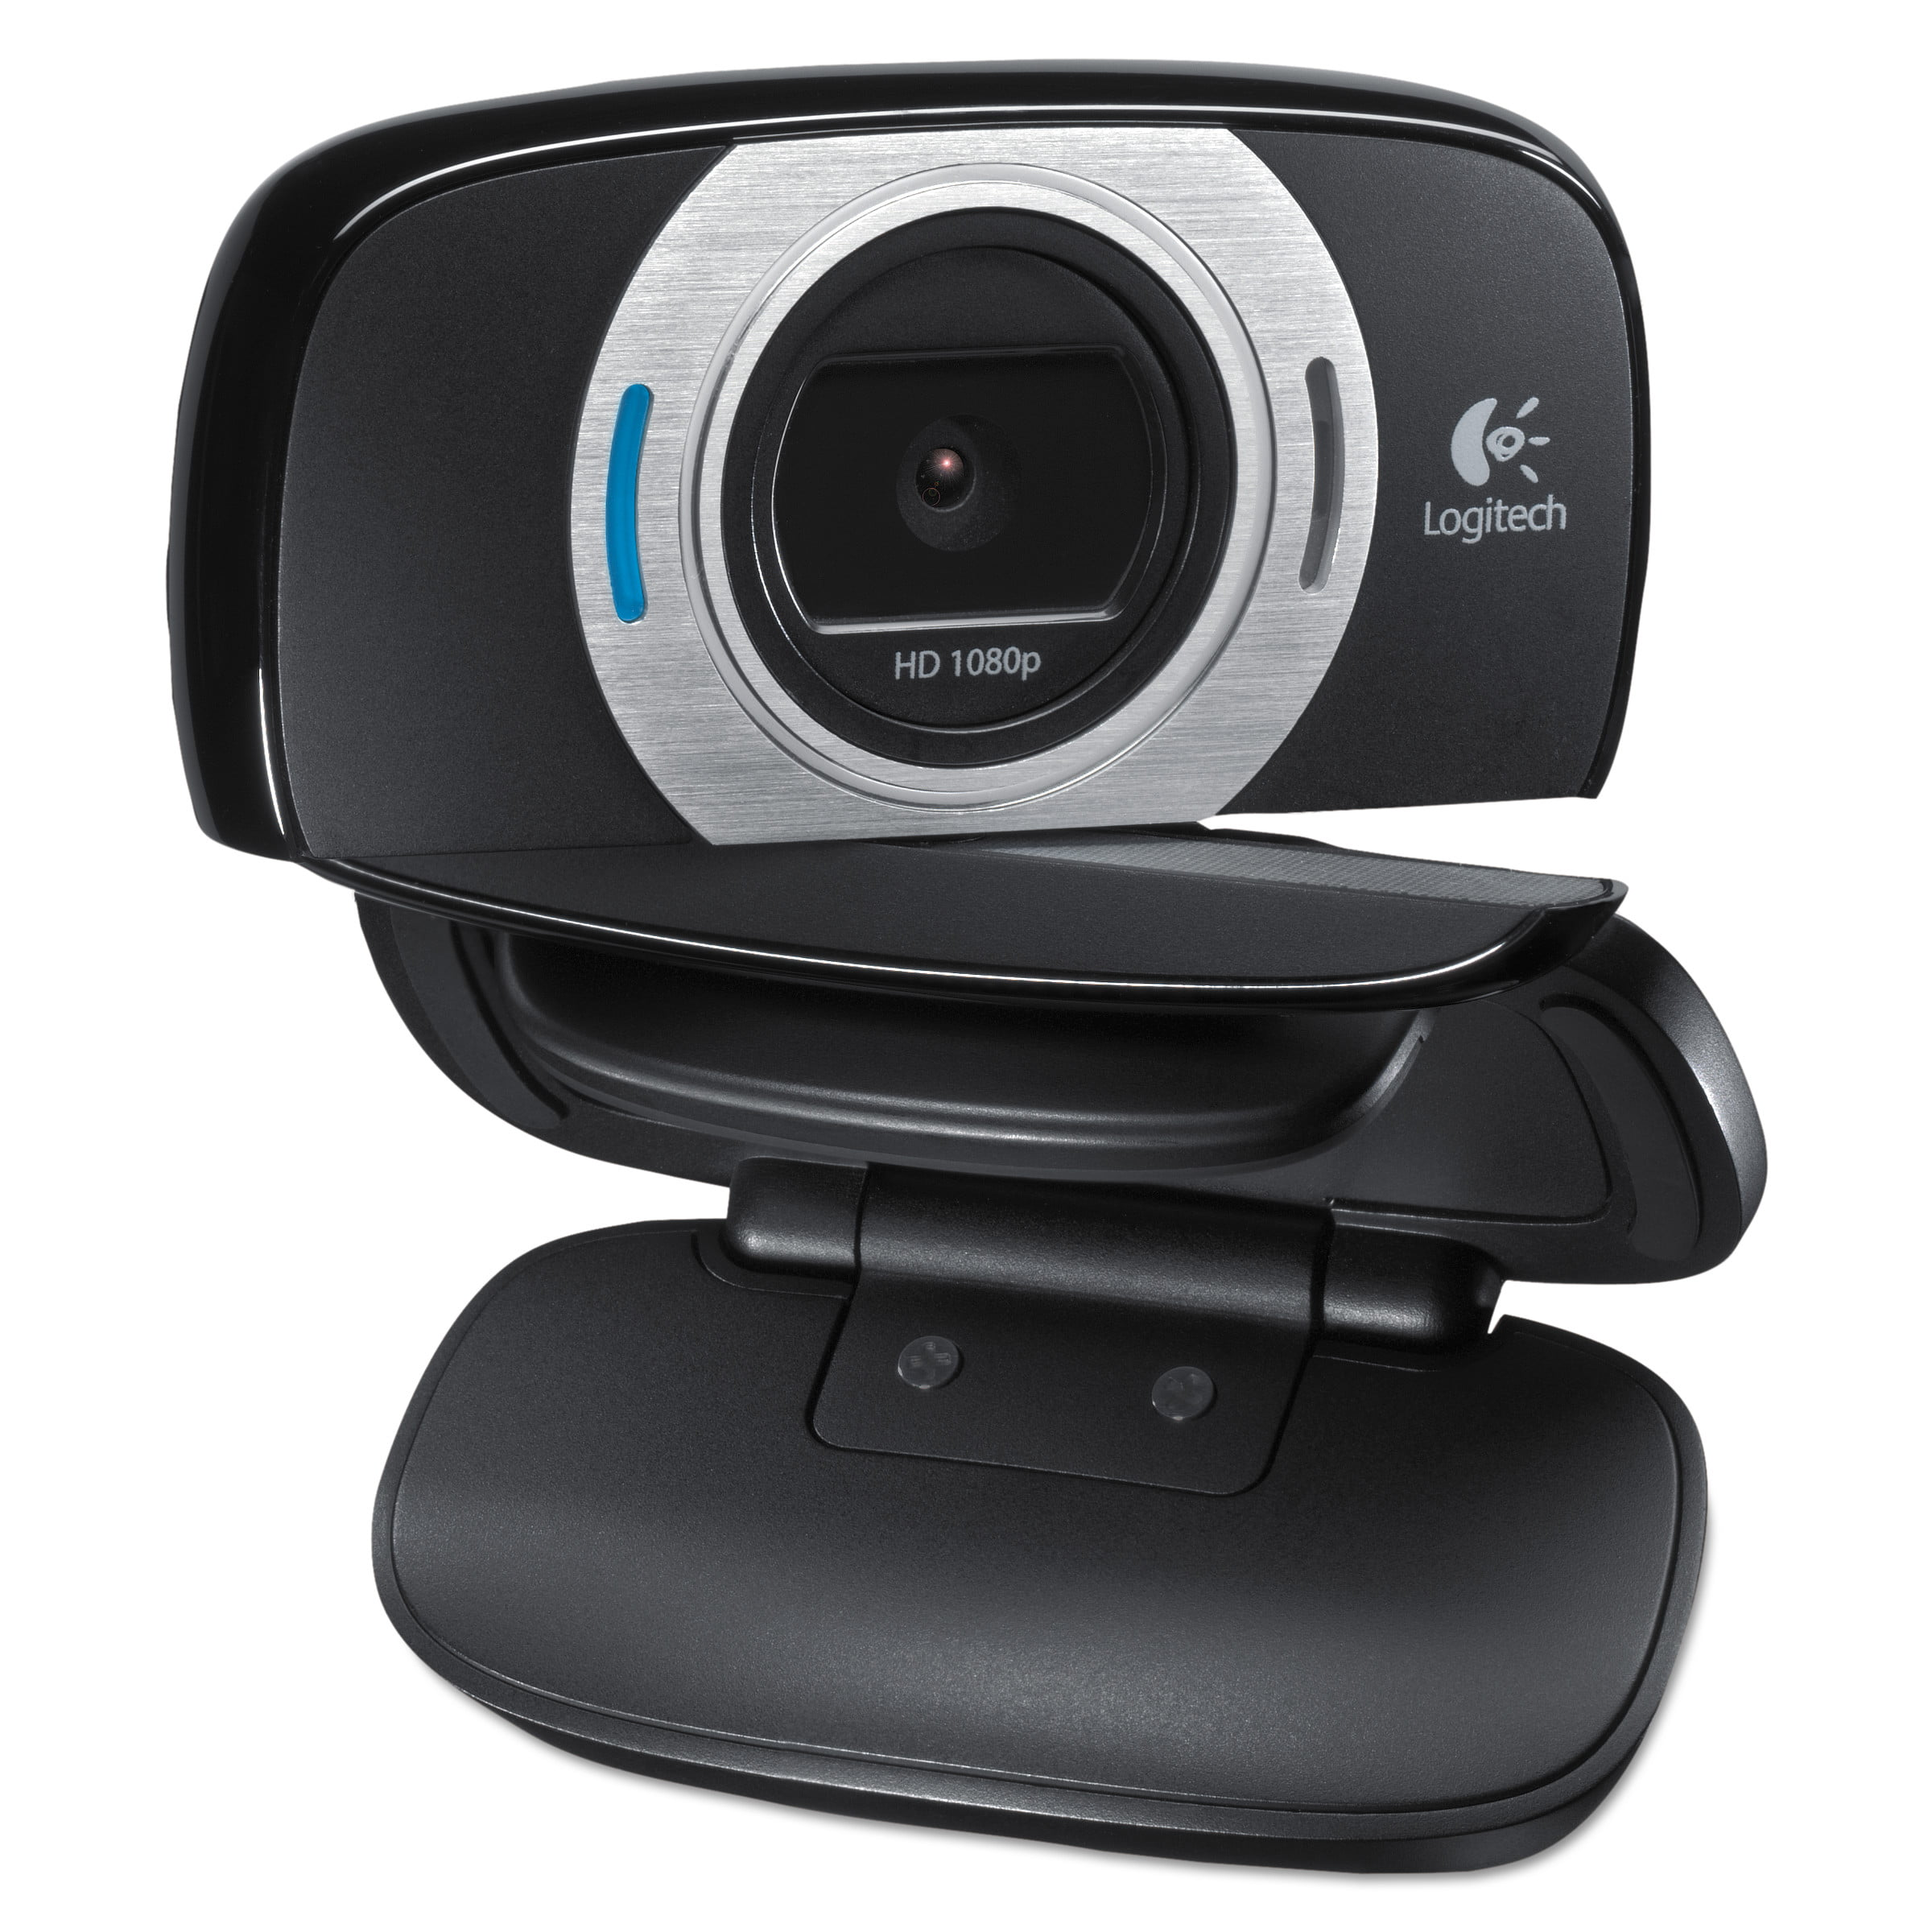 Logitech HD Laptop Webcam C615 with Fold-and-Go Design, 360-Degree Swivel, 1080p Camera by Logitech